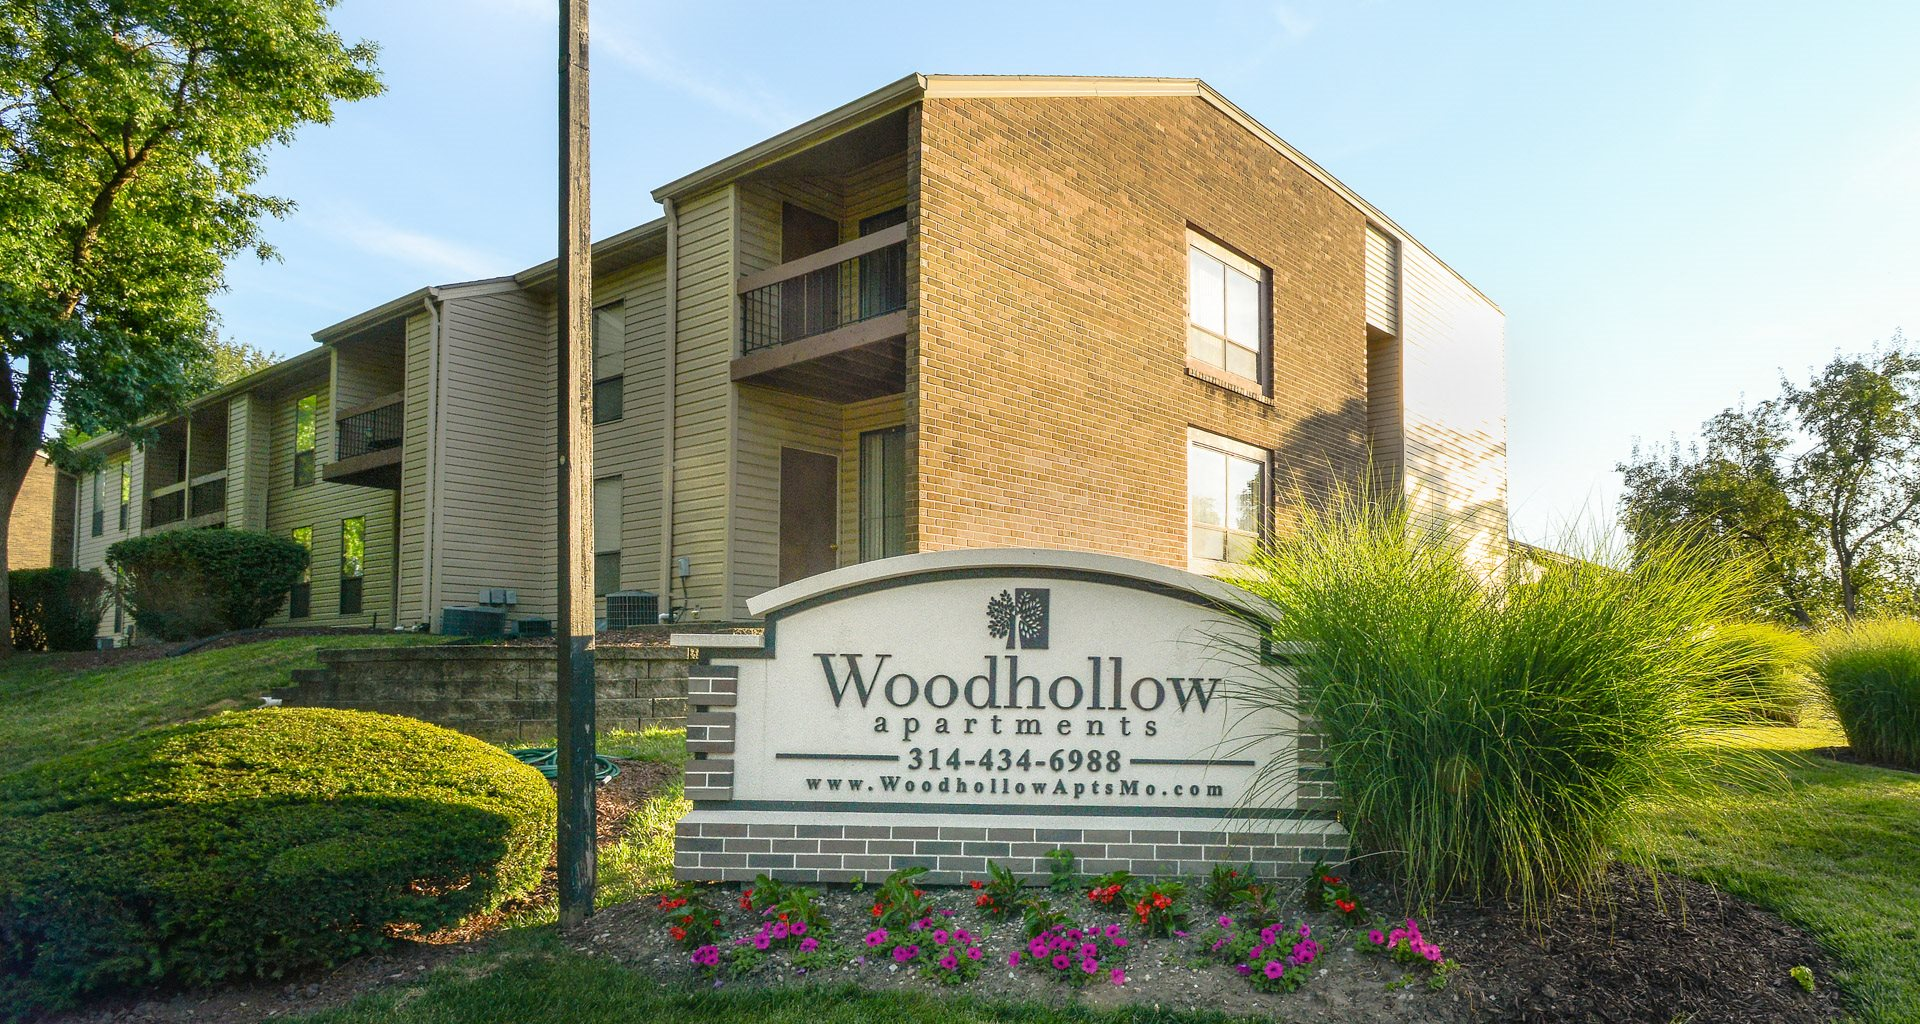 Woodhollow Apartments Apartments In Maryland Heights Mo